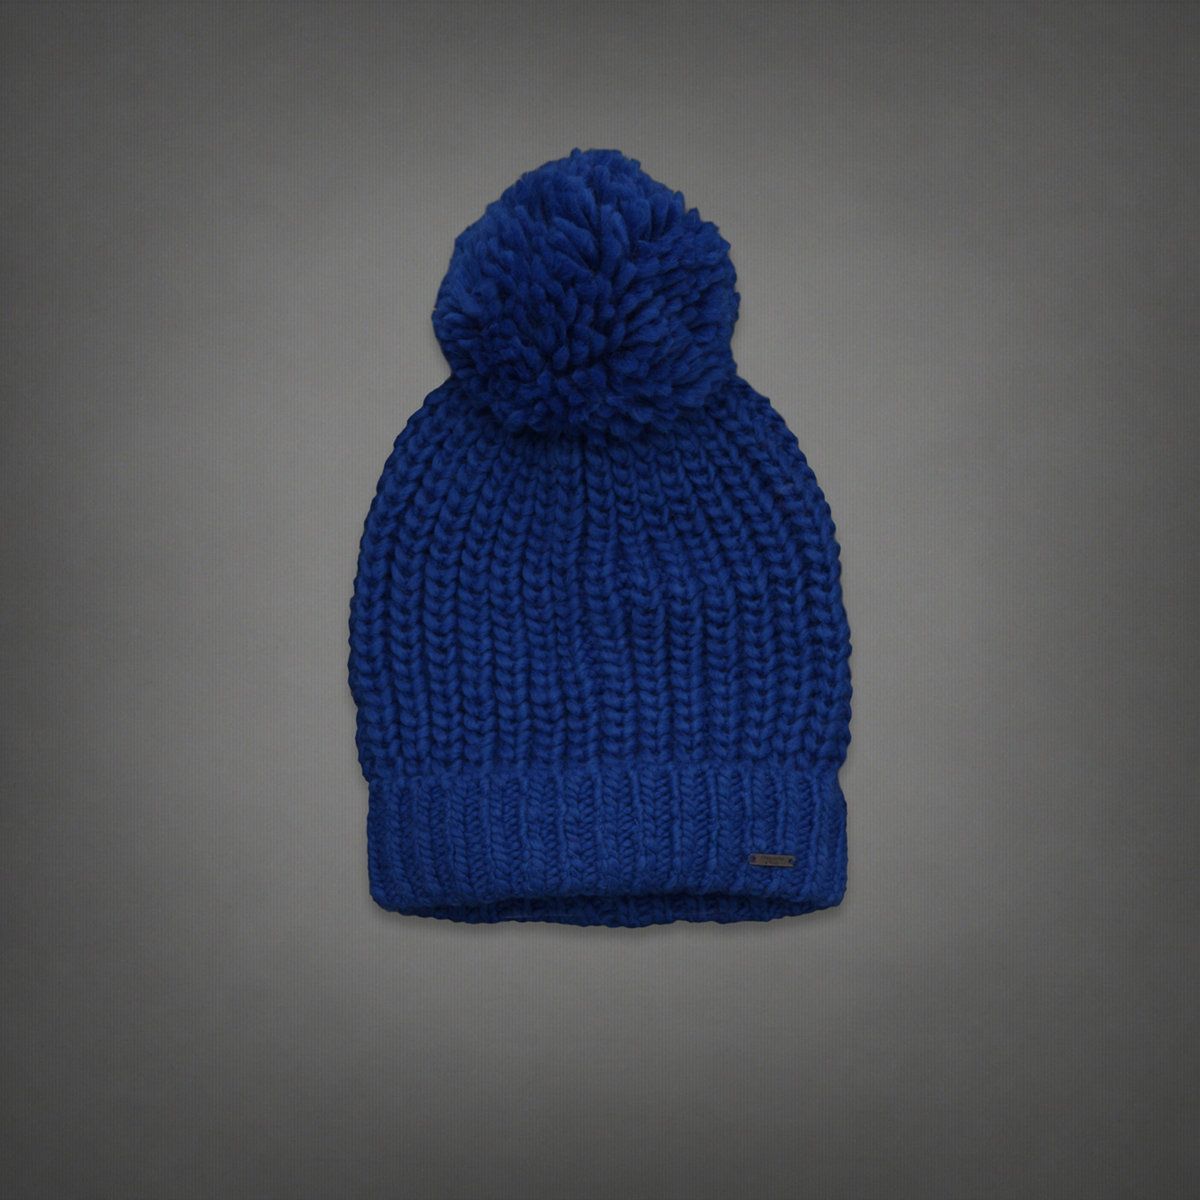 Abercrombie Accessories Abercrombie Accessories Abercrombie Womens Abercrombie Couple Abercrombie Womens: Womens Cute Winter Hat